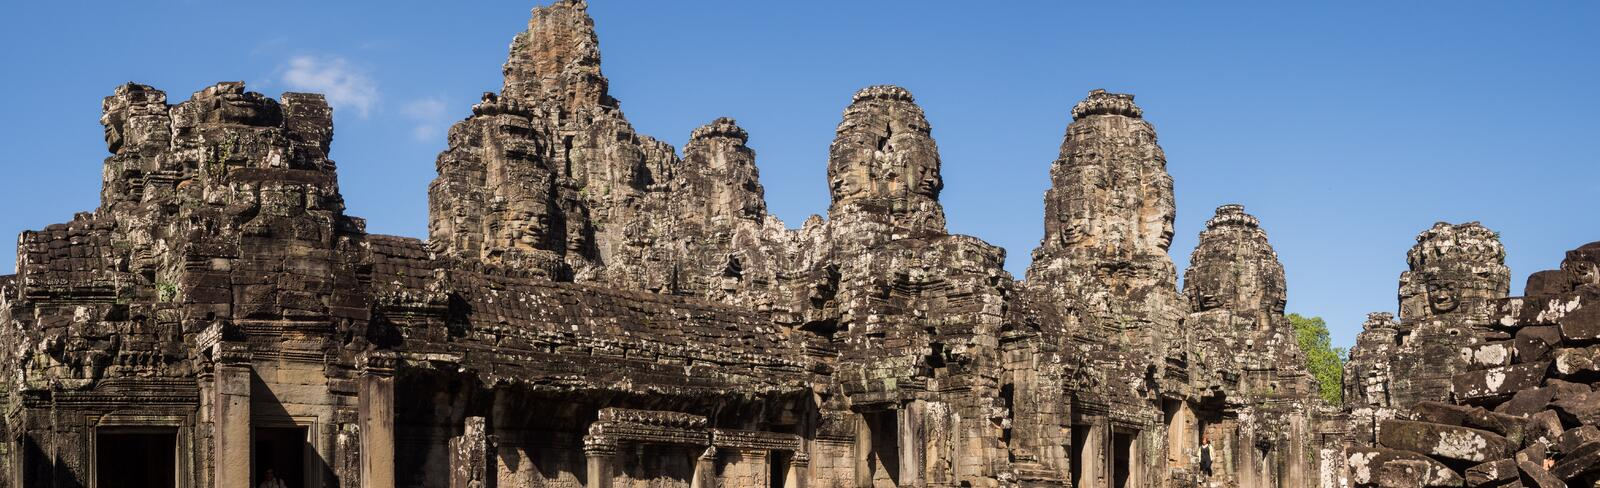 Panoramic of Bayon Temple in Angkor Temples. In Cambodia stock image